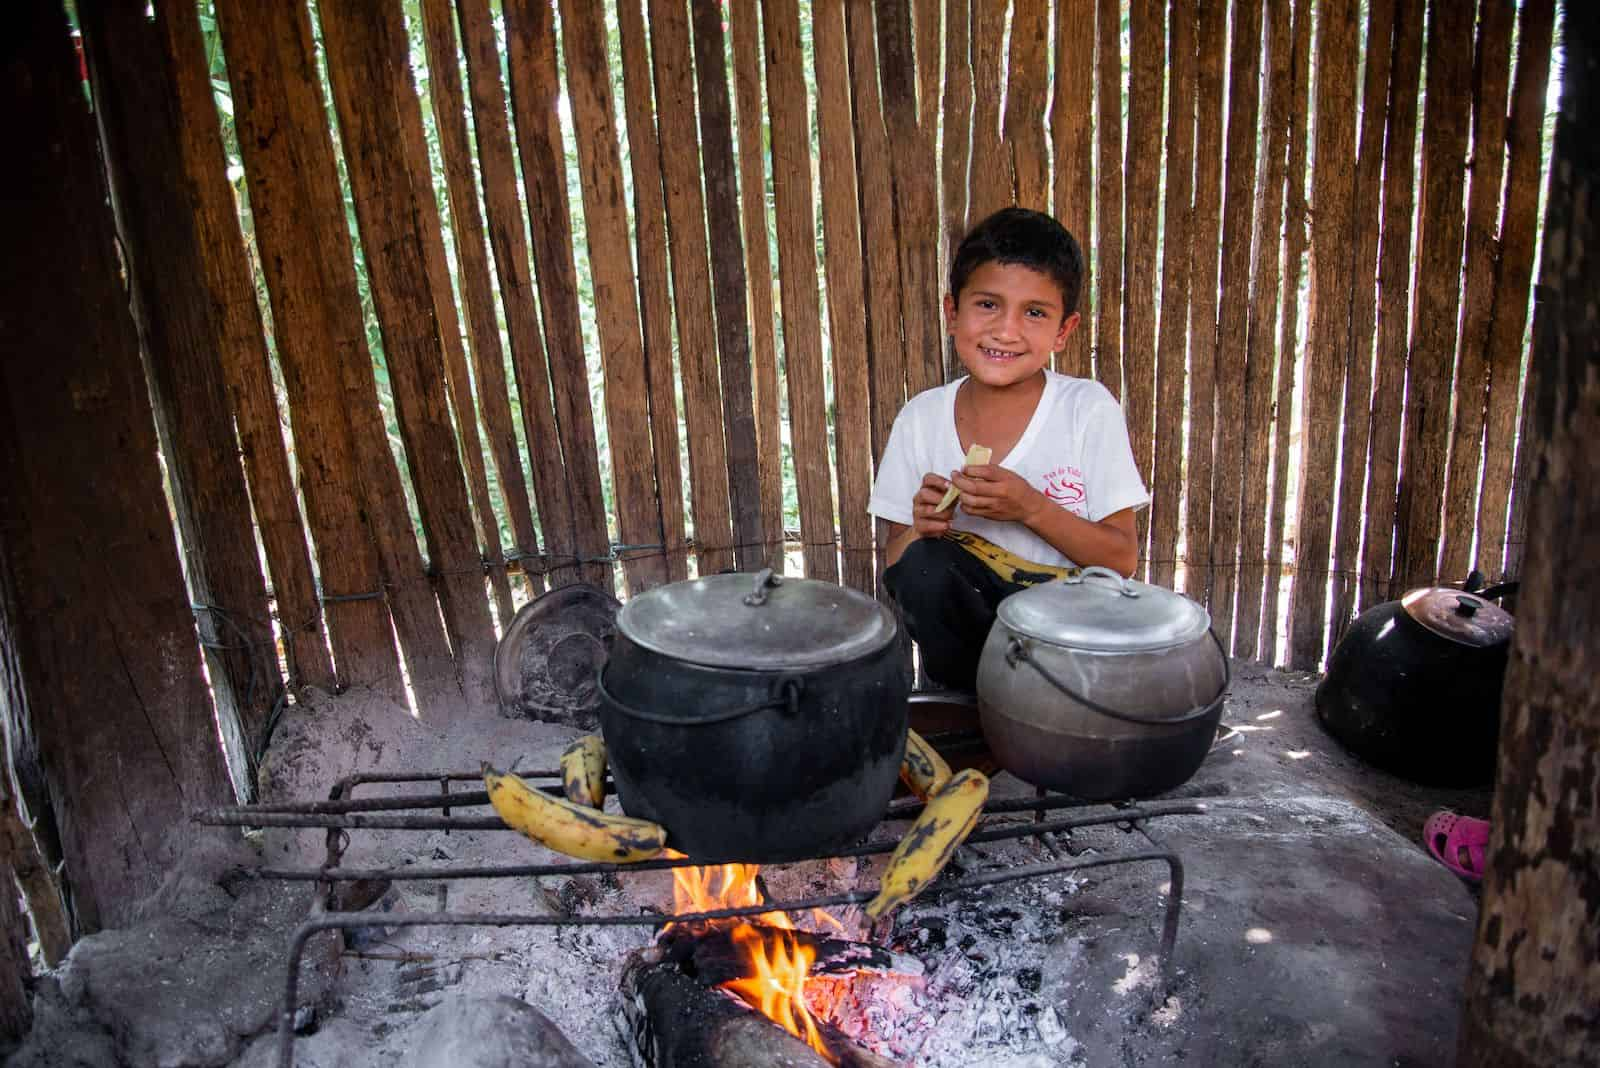 A boy wearing a white shirt crouches in front of a wood fire that has a wire frame over it with several plantains on it and two black pots.